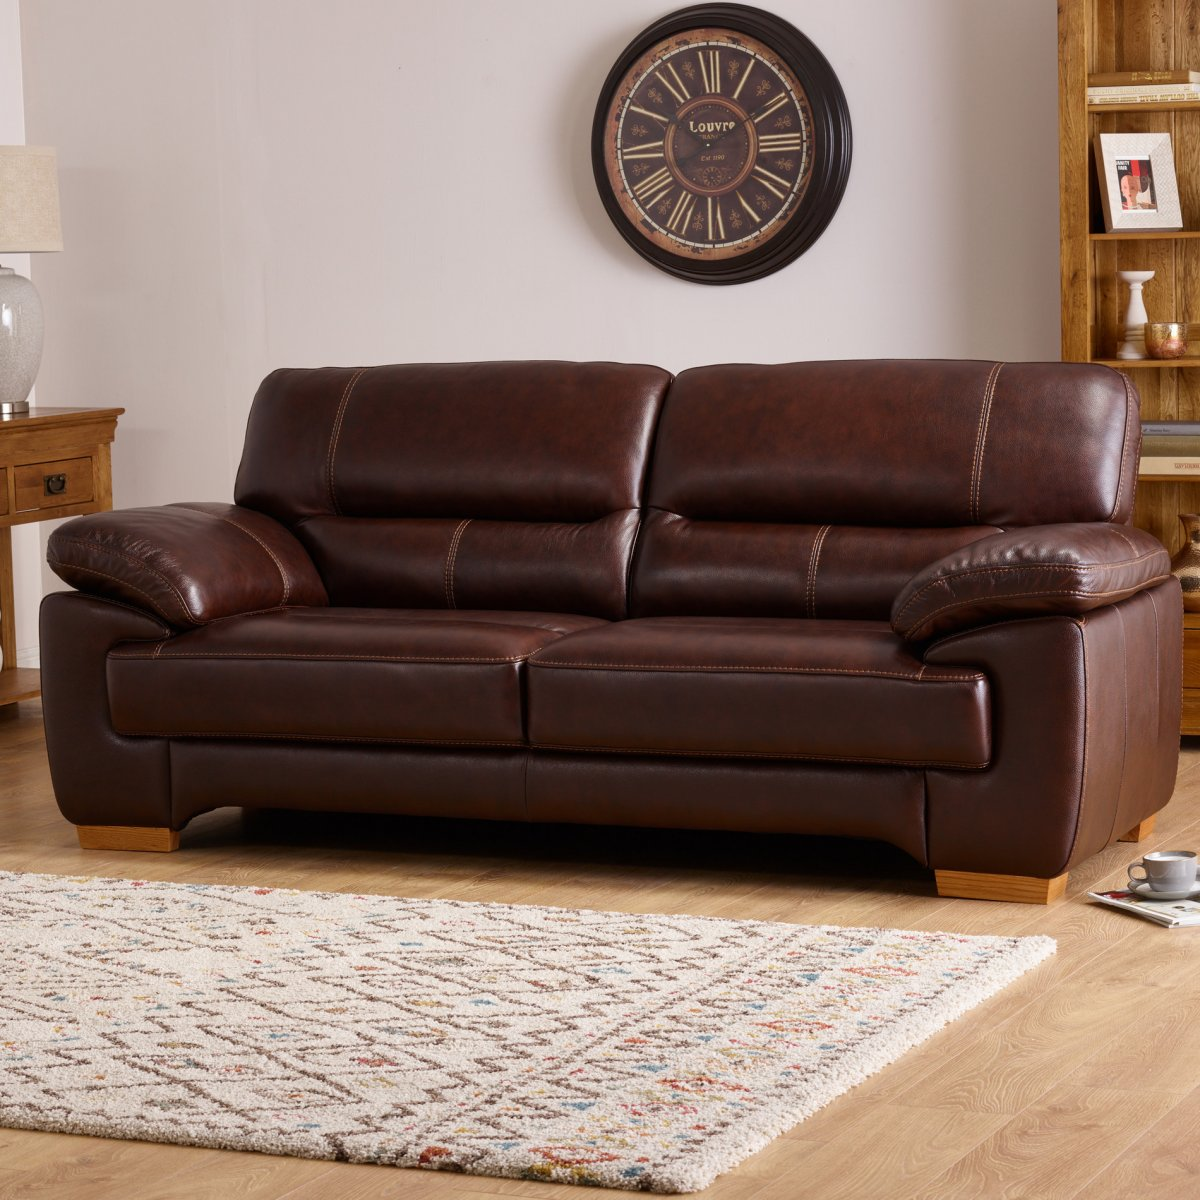 Clayton 3 Seater Sofa in Brown Leather | Oak Furniture Land